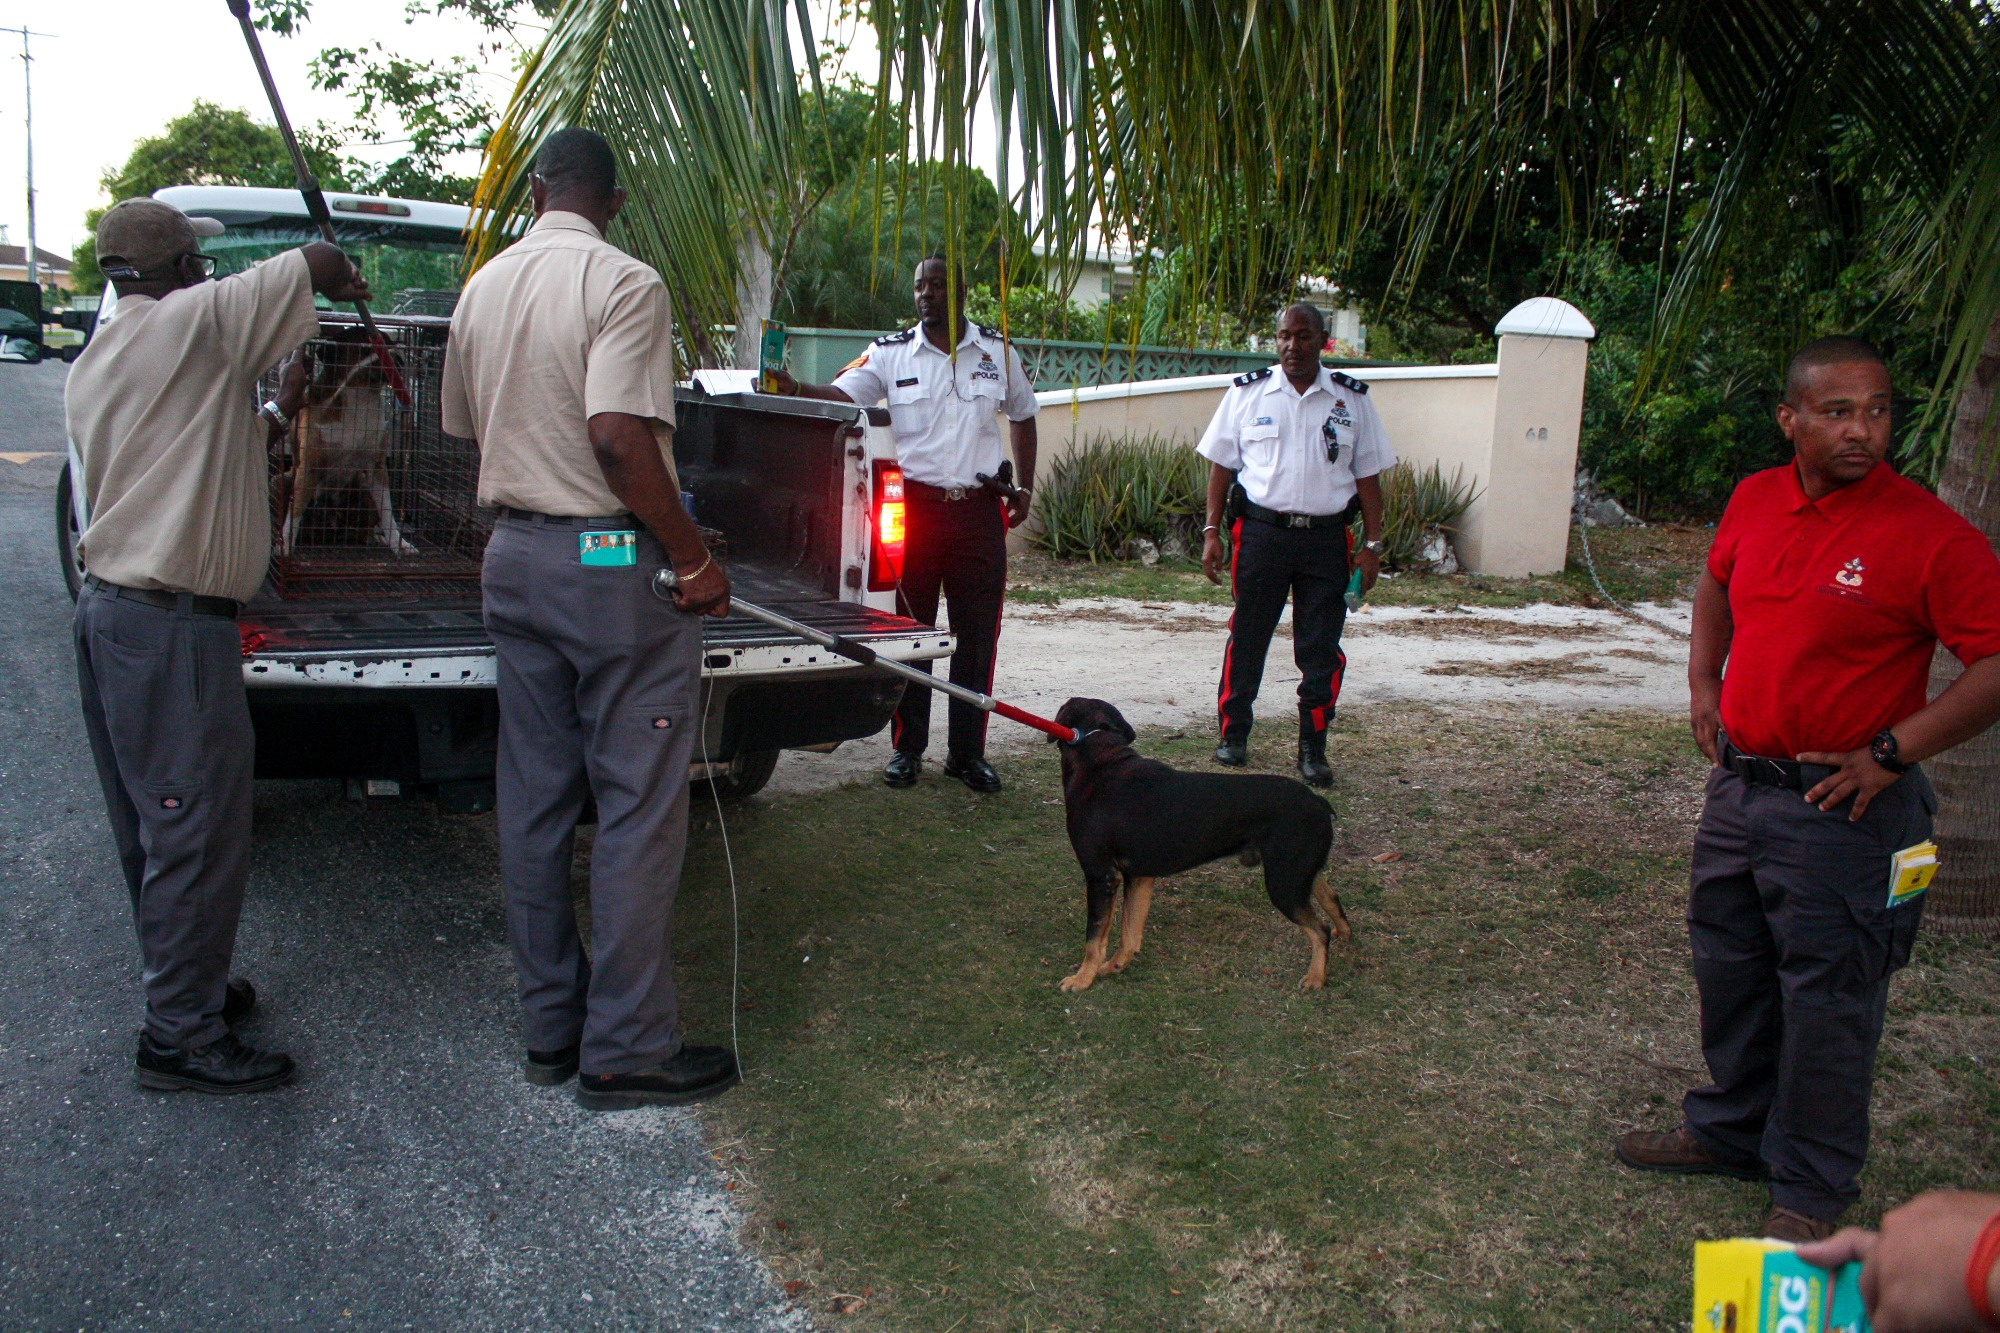 Two dogs were seized on Boltins Avenue.